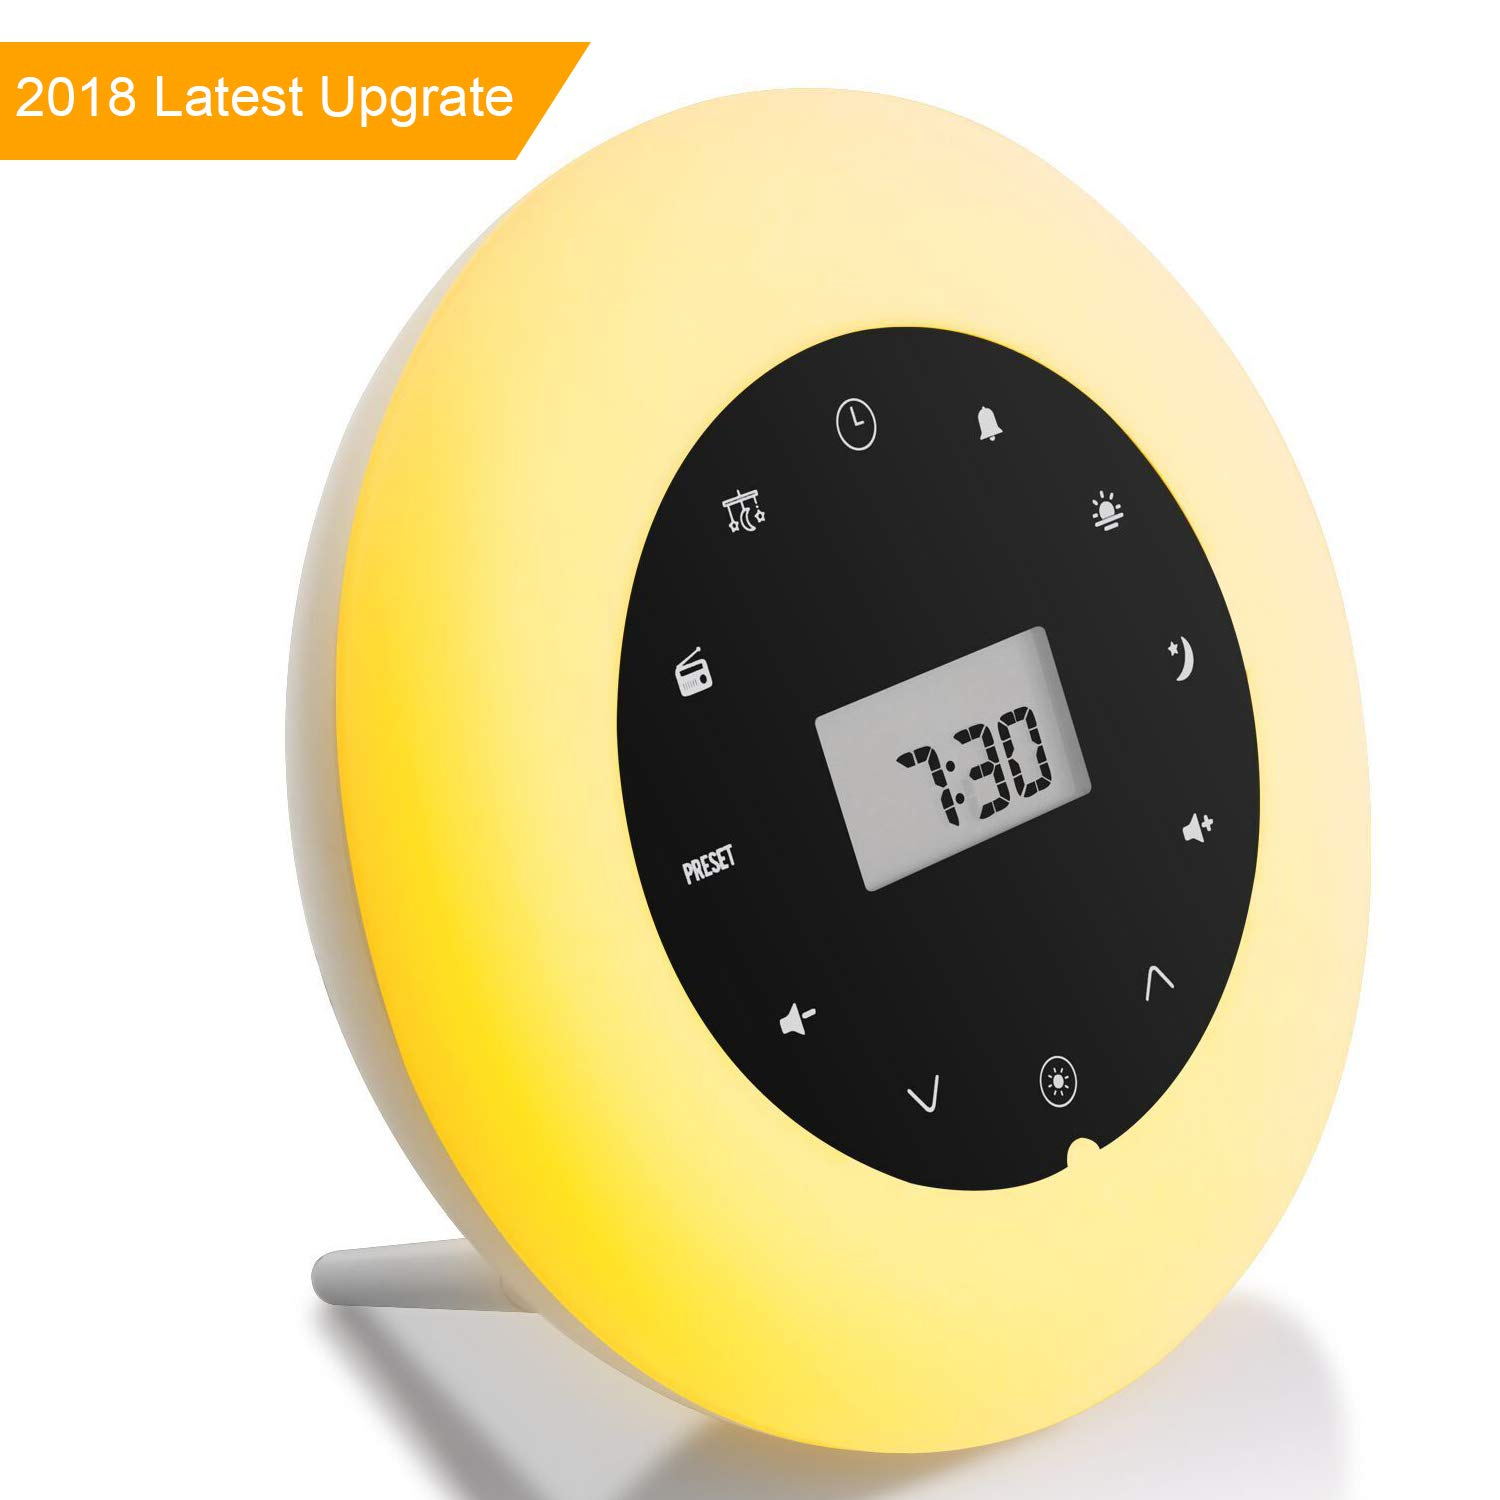 Premium Wake Up Light Alarm Clock Wake Up Lamp Radio White Noise Sound Sleep Light Bedside Lamp Colored Mood Light Sunrise Sunset Simulation Touch Control Multifunction product image